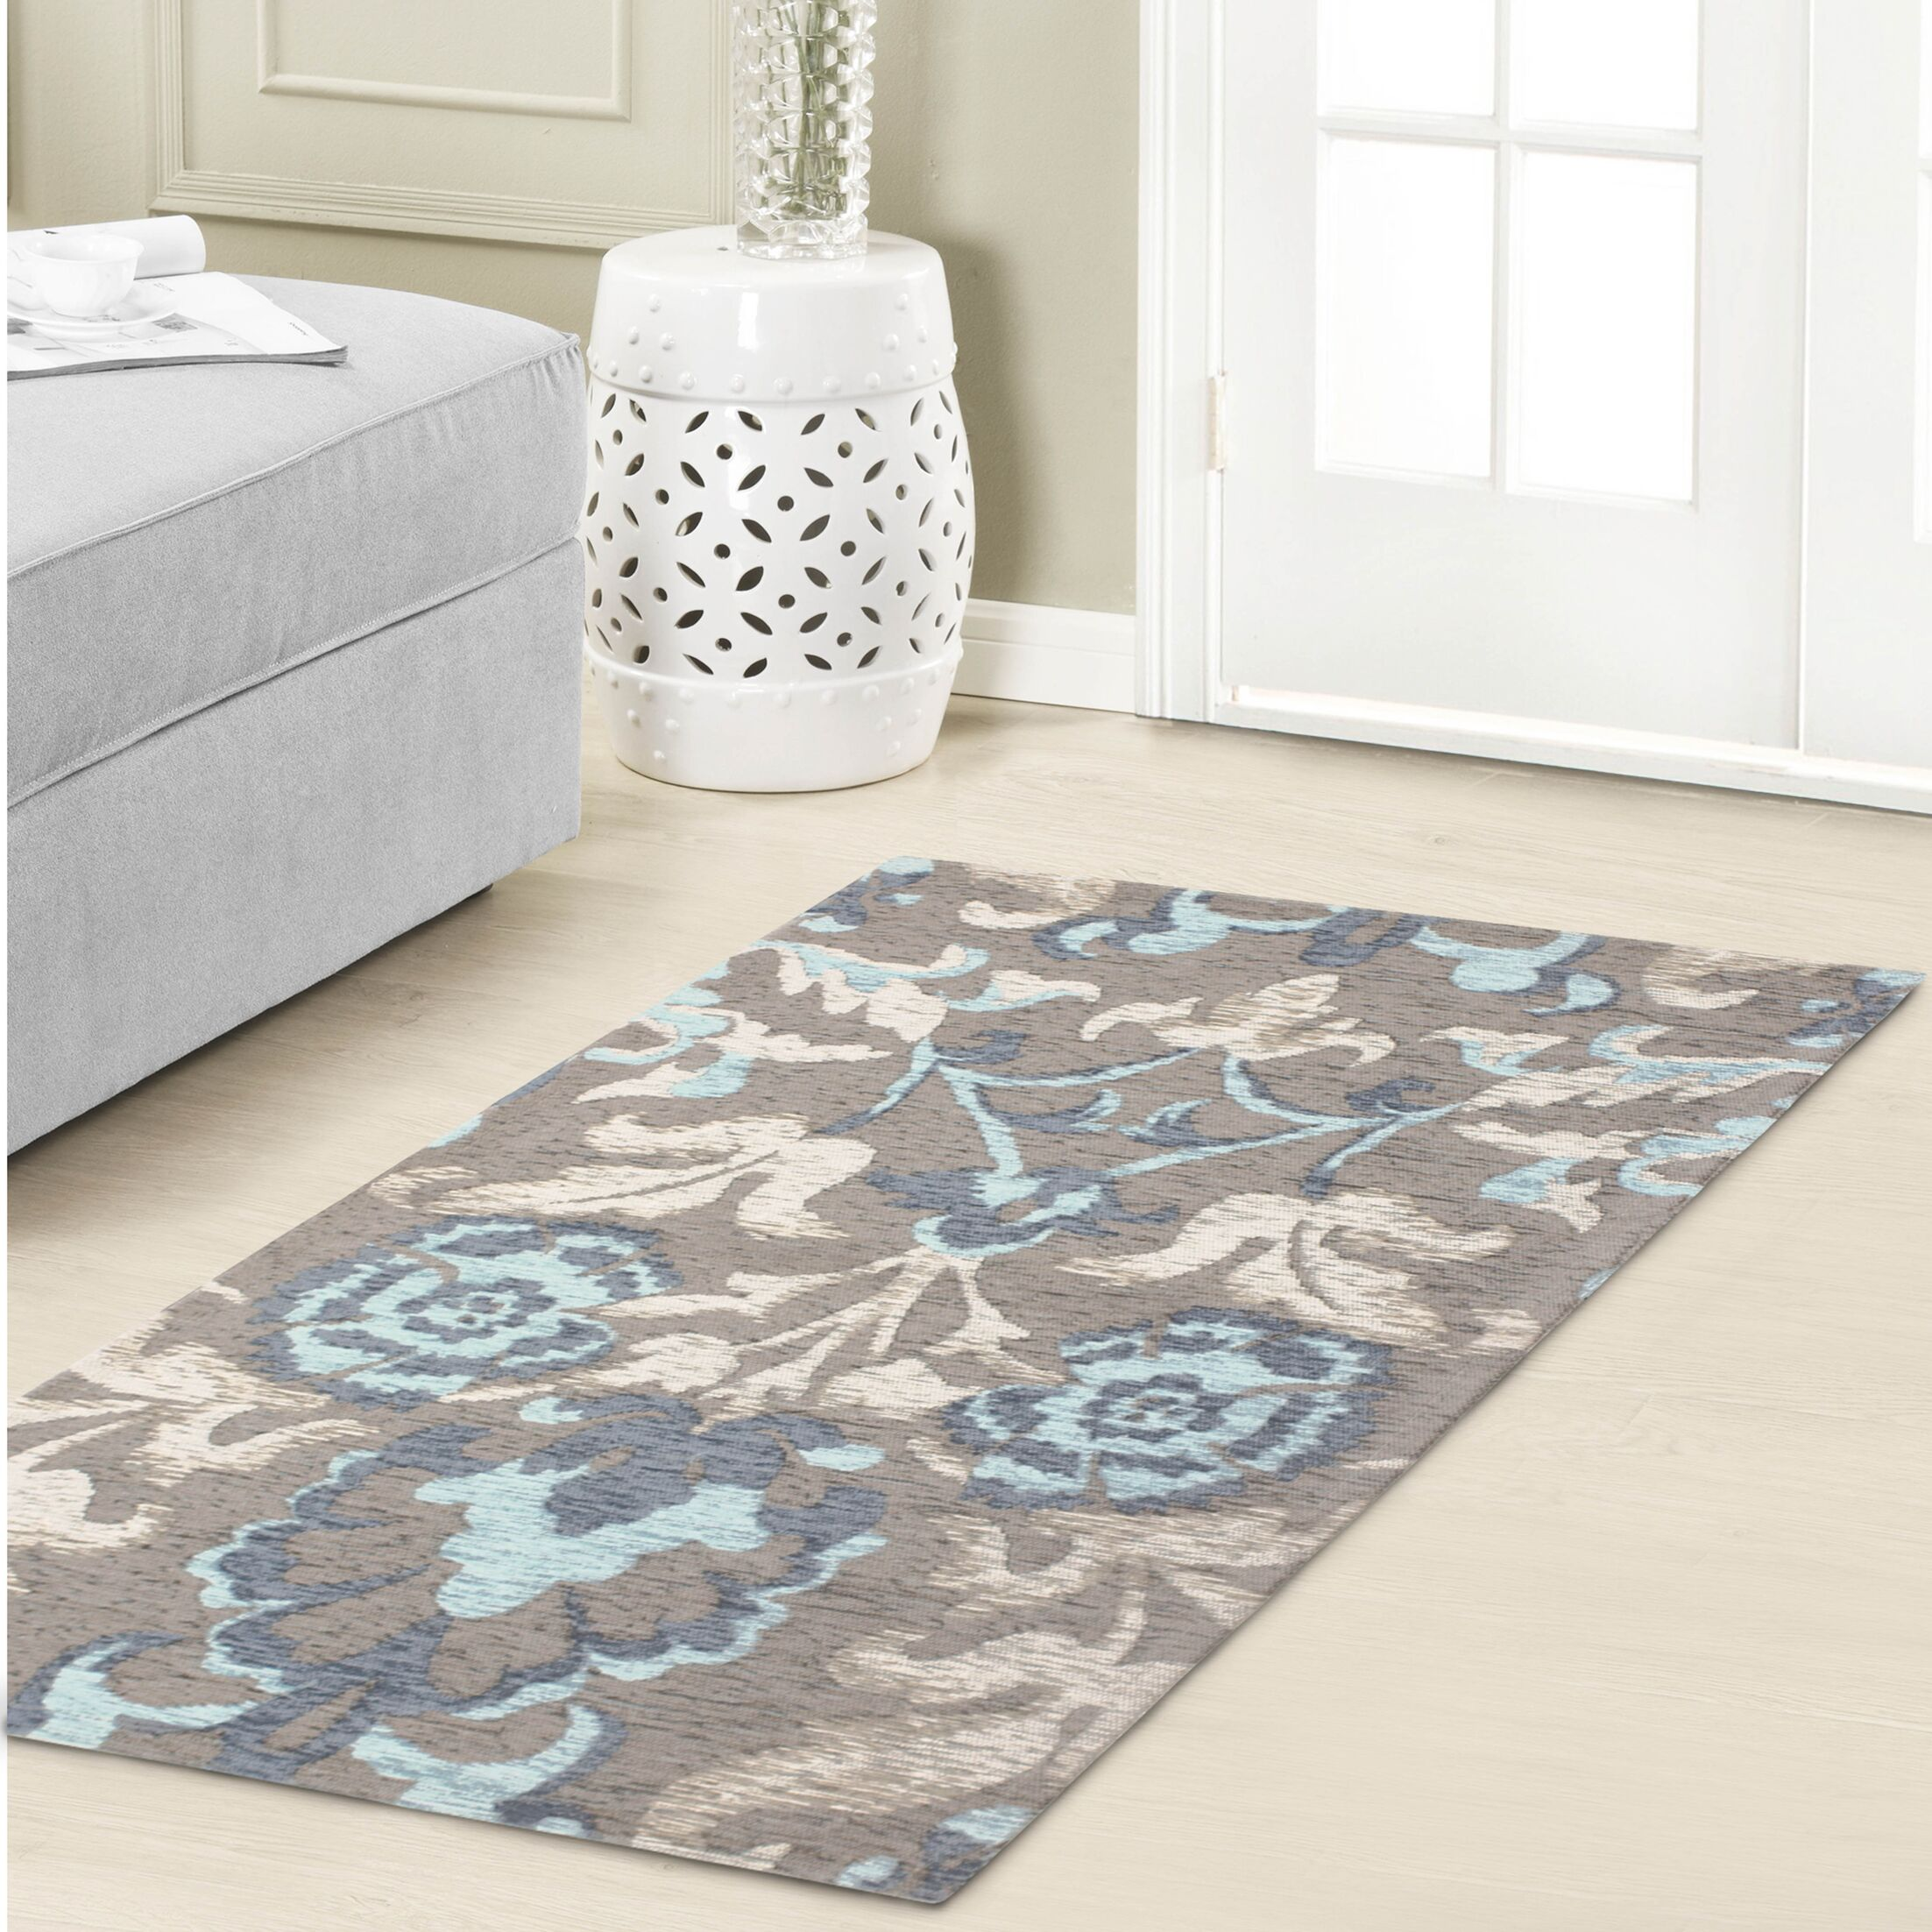 Penelope Jacquard Chenille Light Blue/Gray Area Rug Rug Size: 5' x 8'